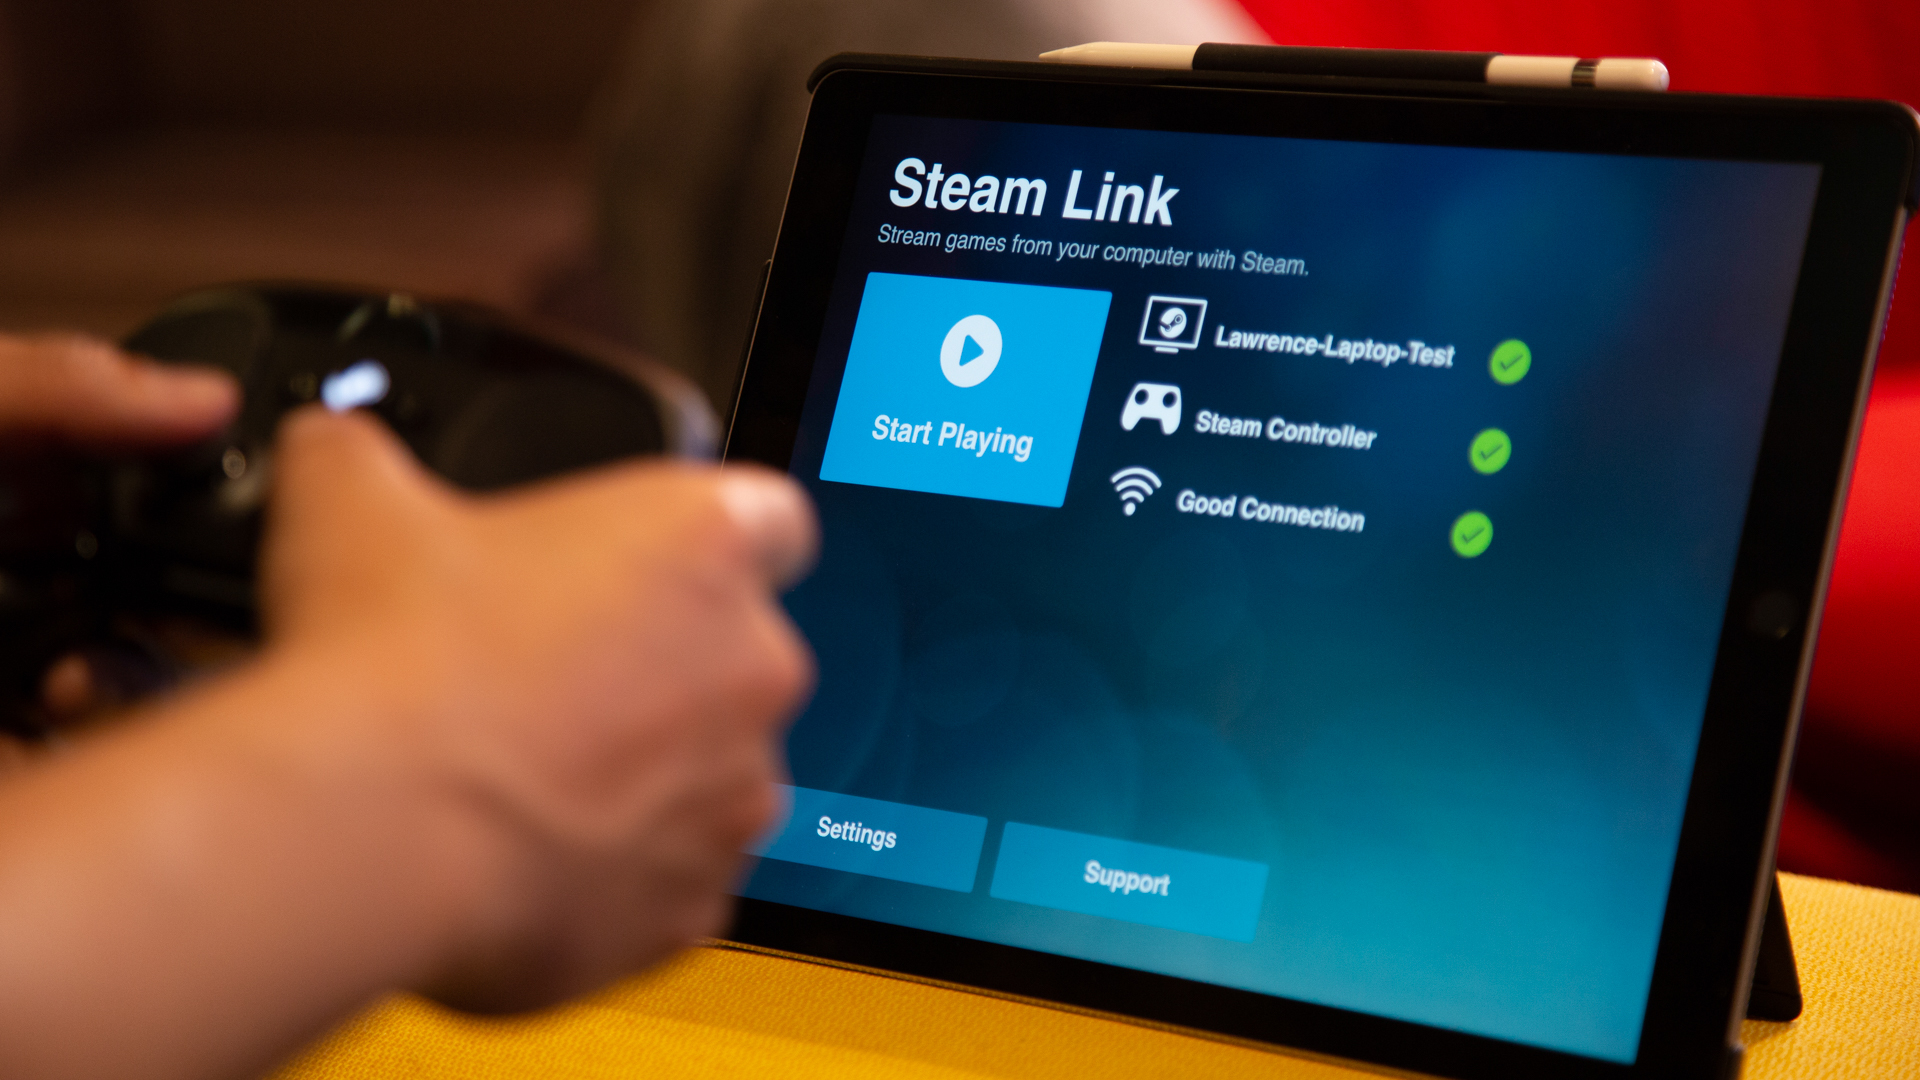 Wohnzimmer Pc 2015 Steam Link On Steam